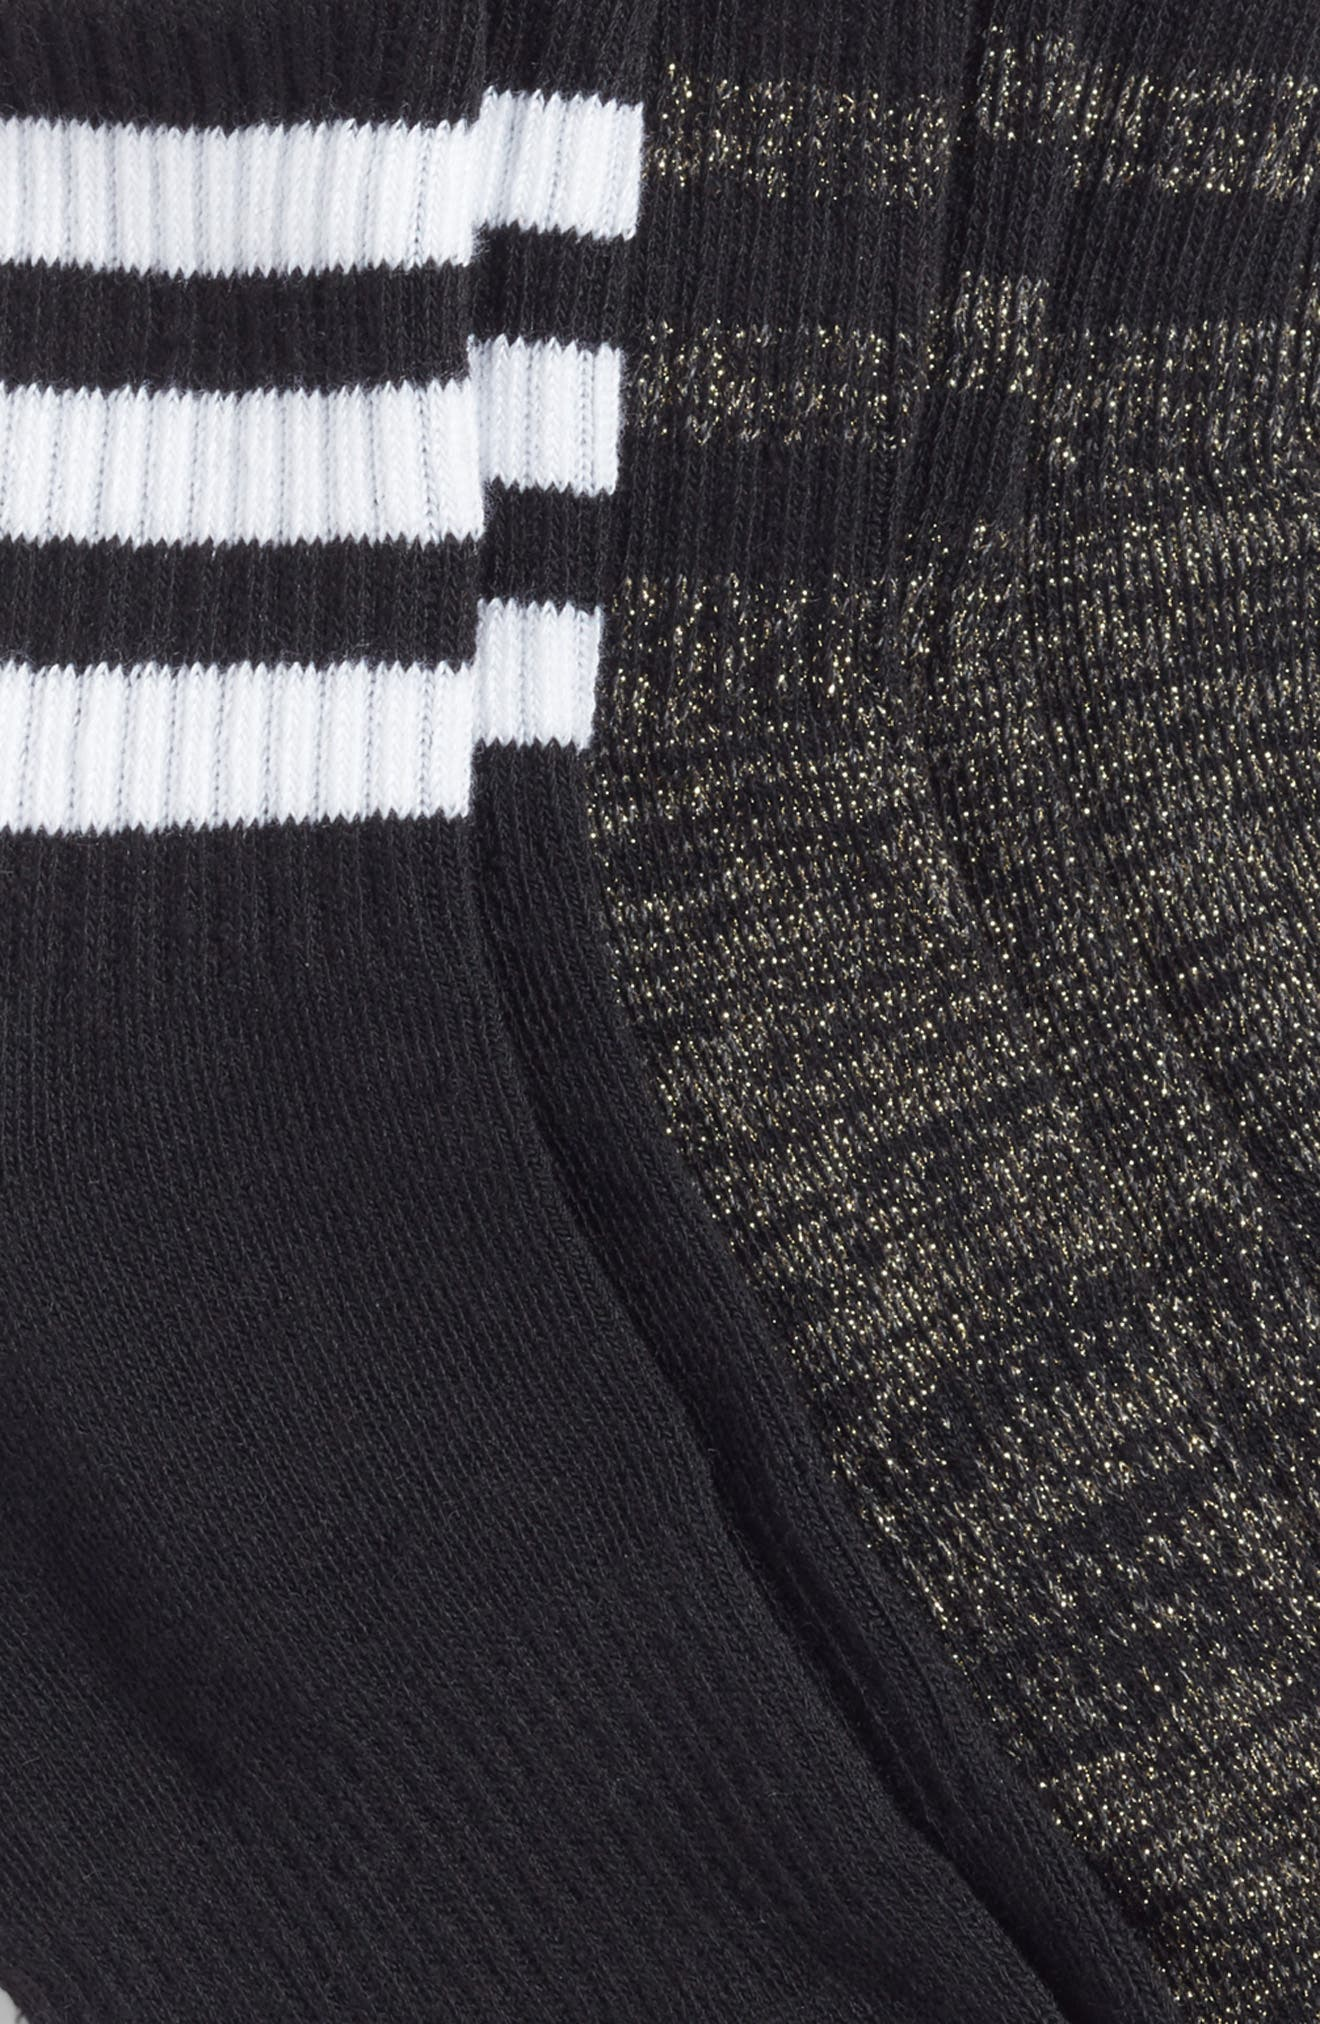 Alternate Image 2  - adidas 3-Stripes 3-Pack Ankle Socks